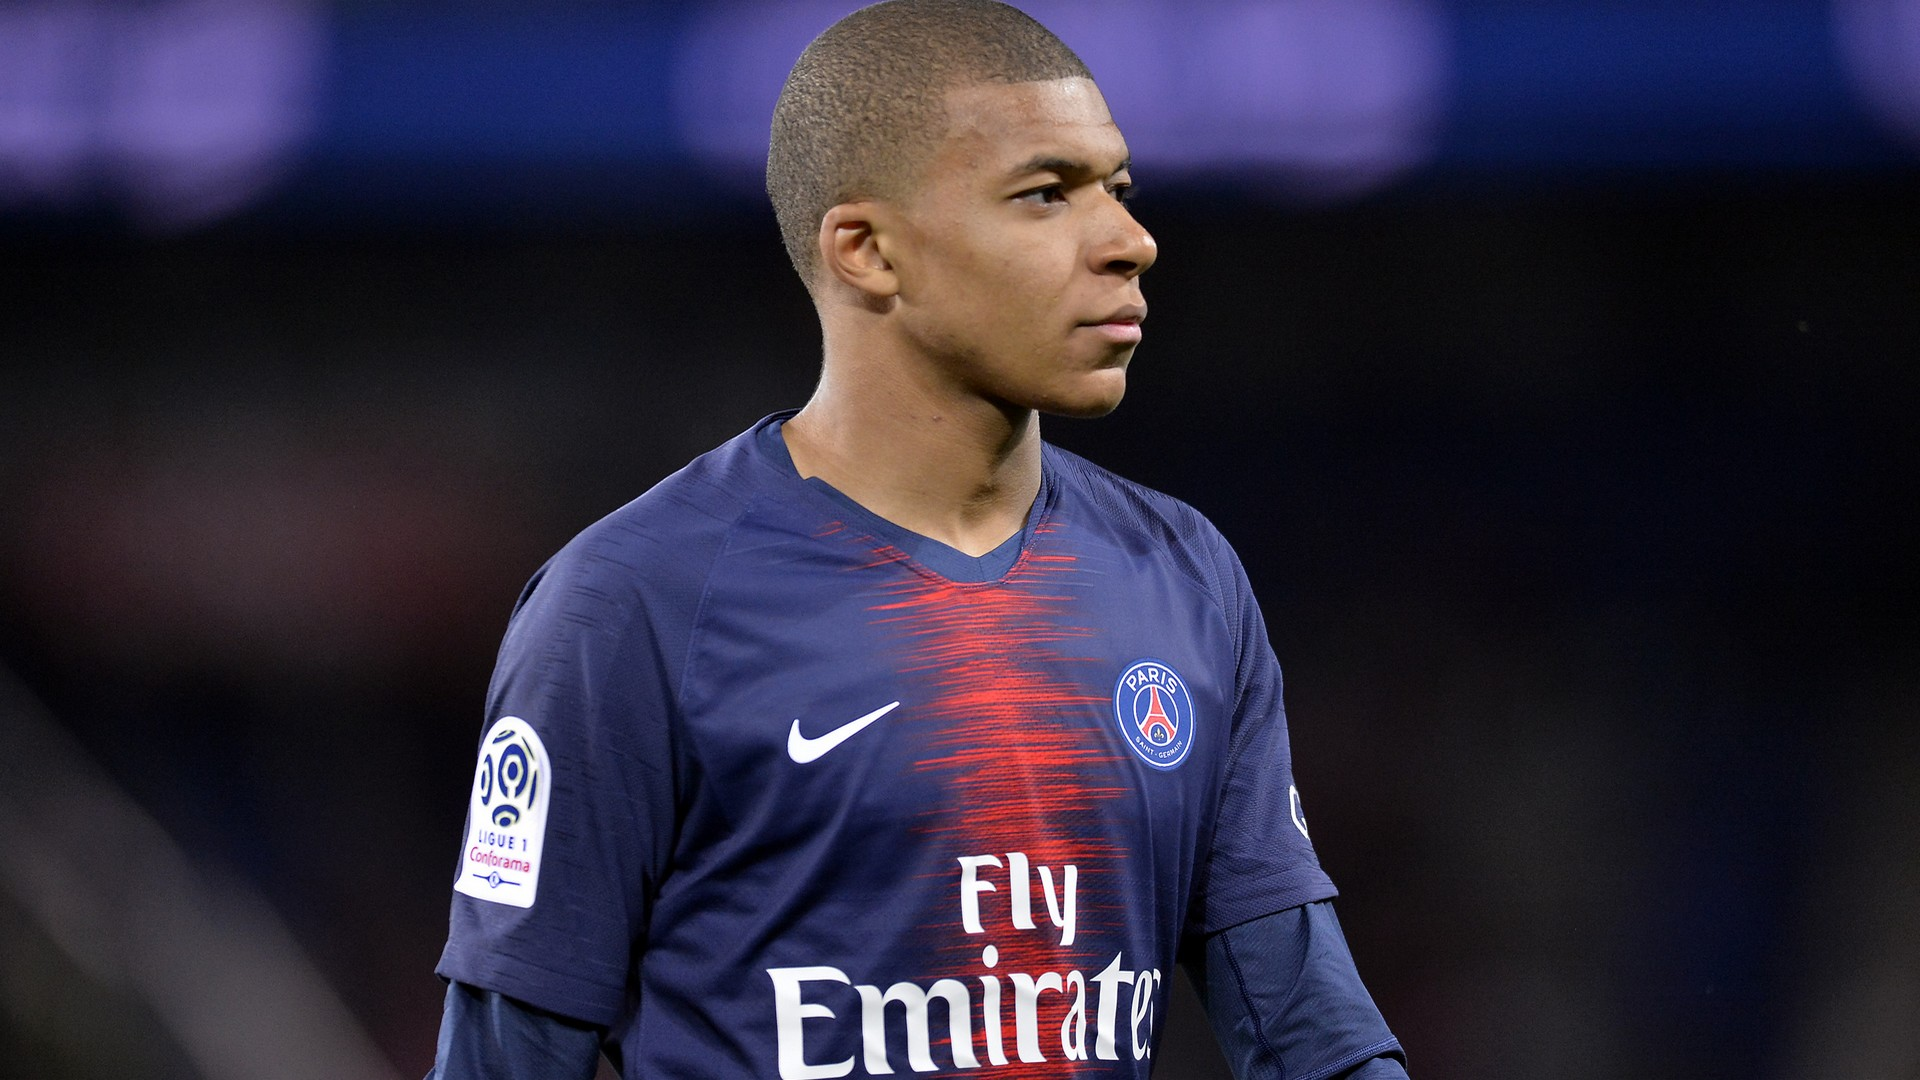 PSG: Malcom, Aouar, Mbappe And The Ligue 1 Rising Stars Of The